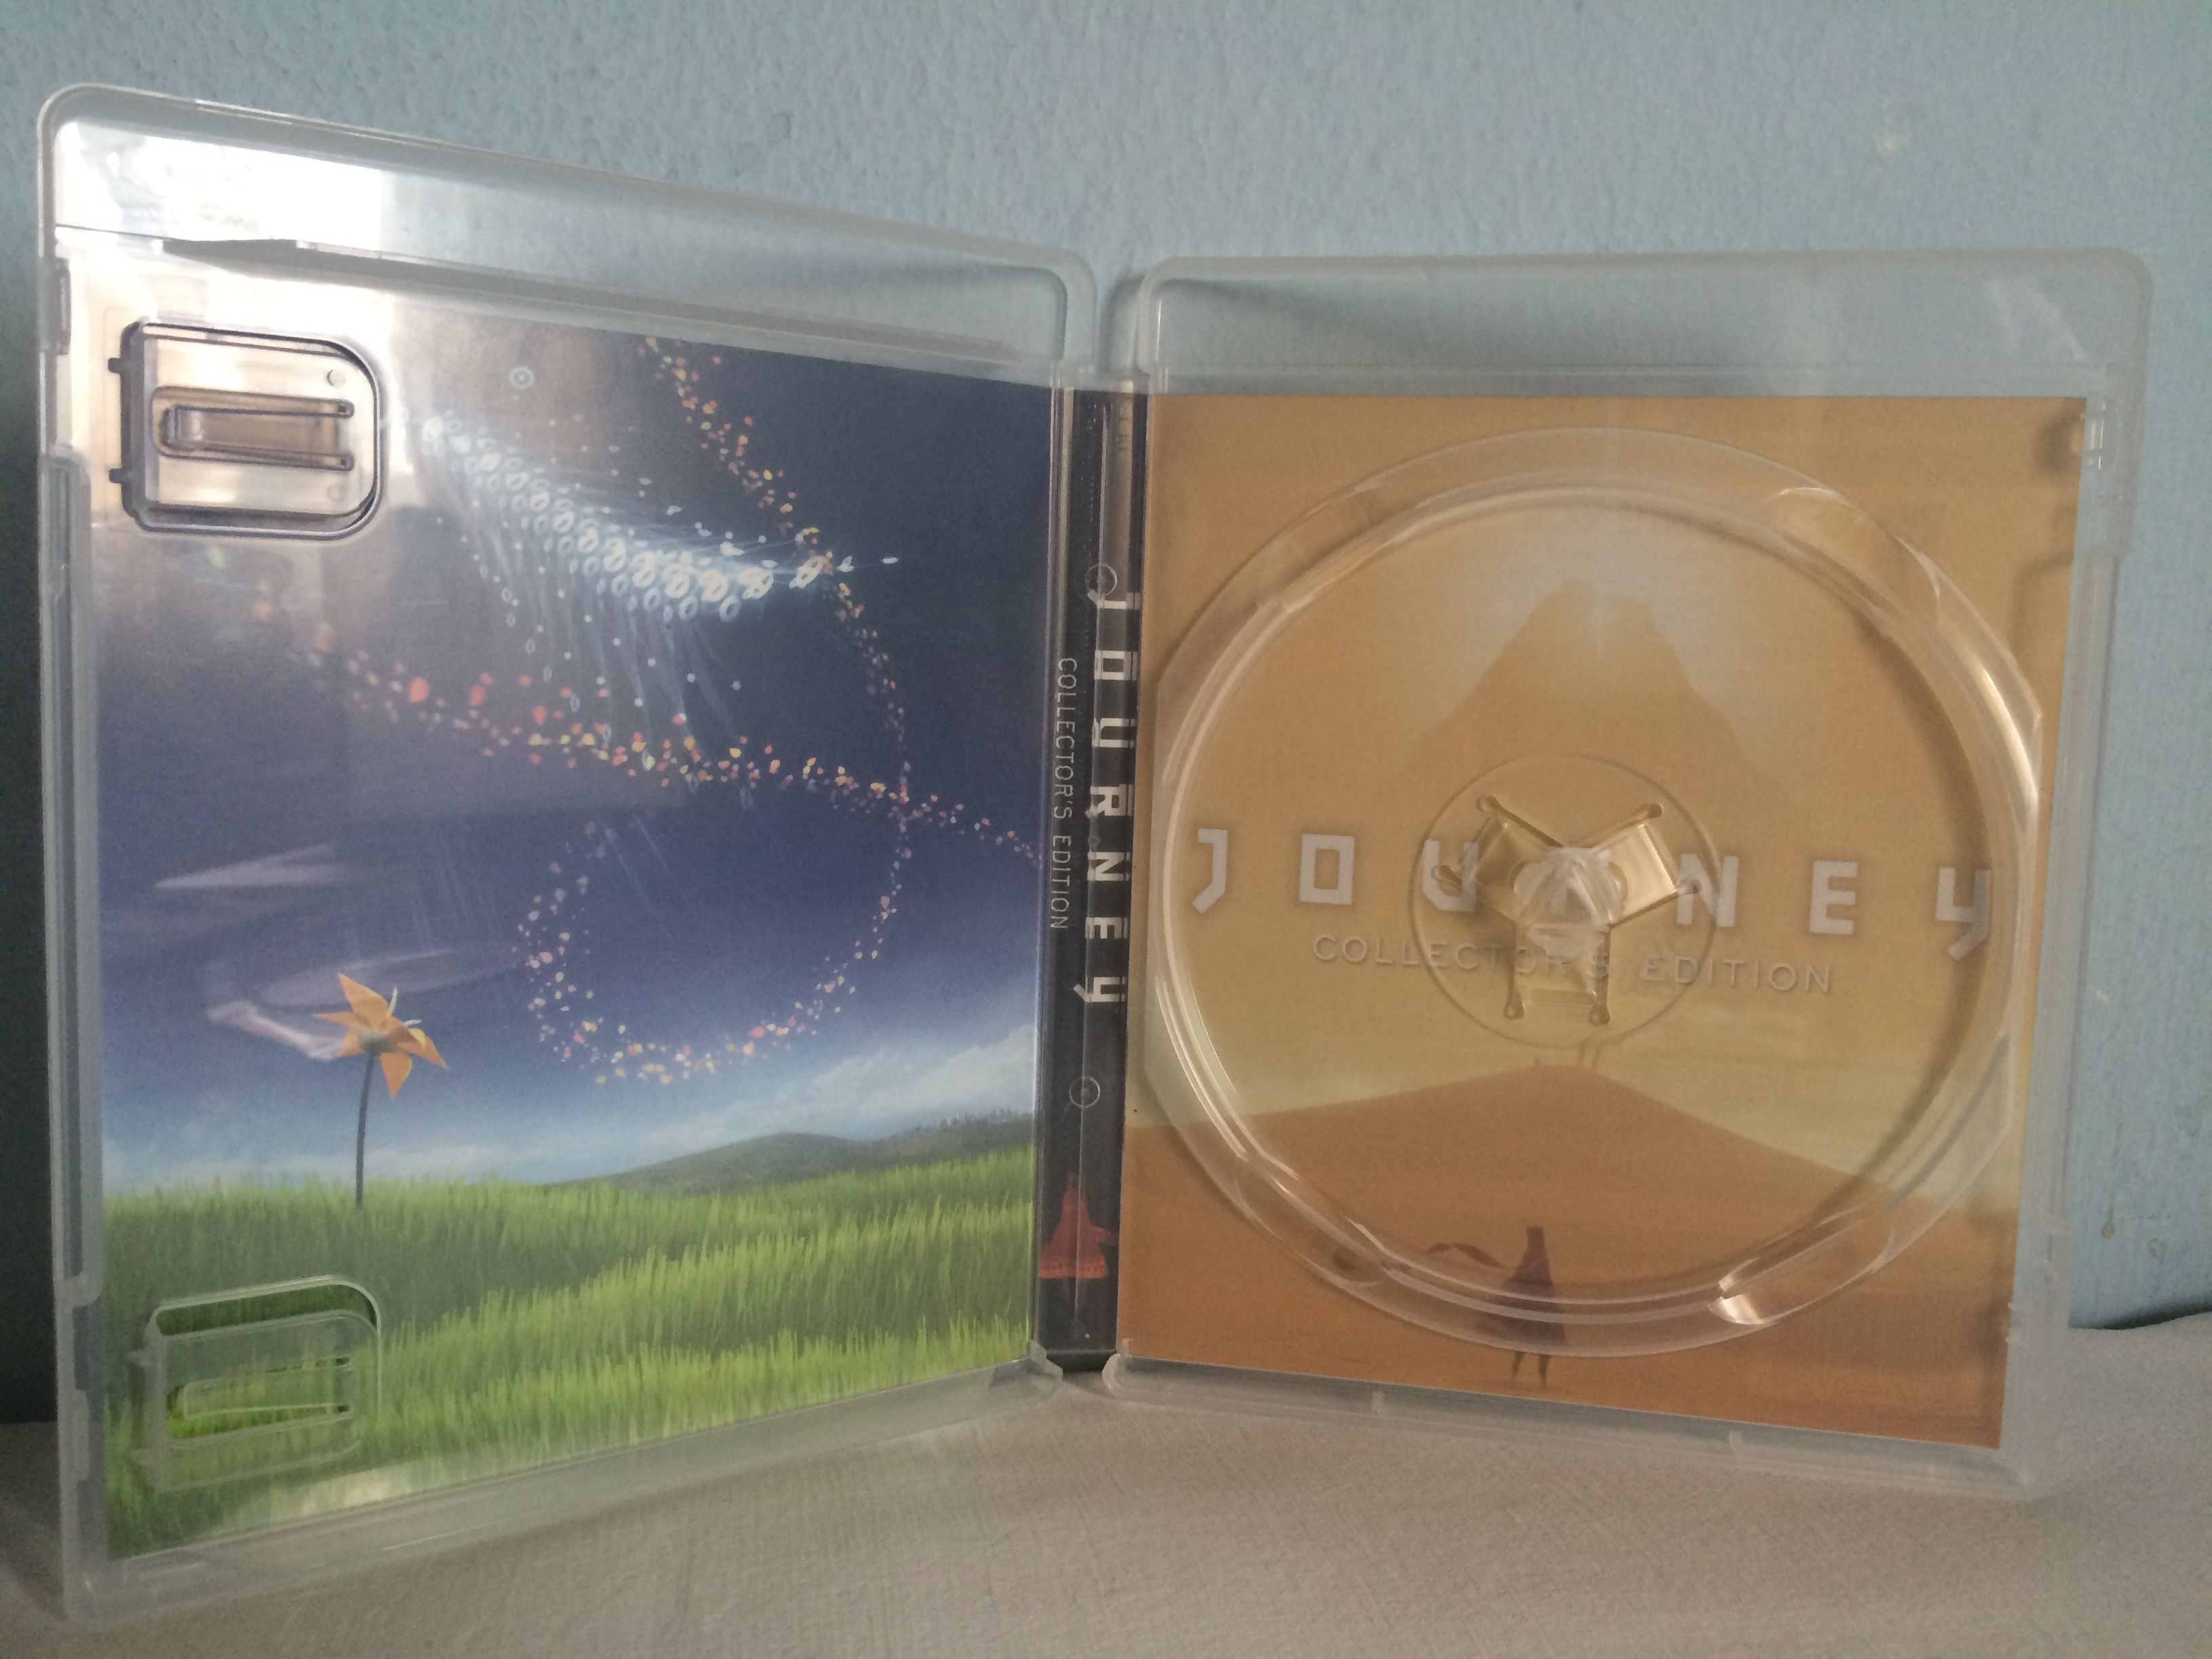 Journey Collector's Edition alternative cover  | Journey